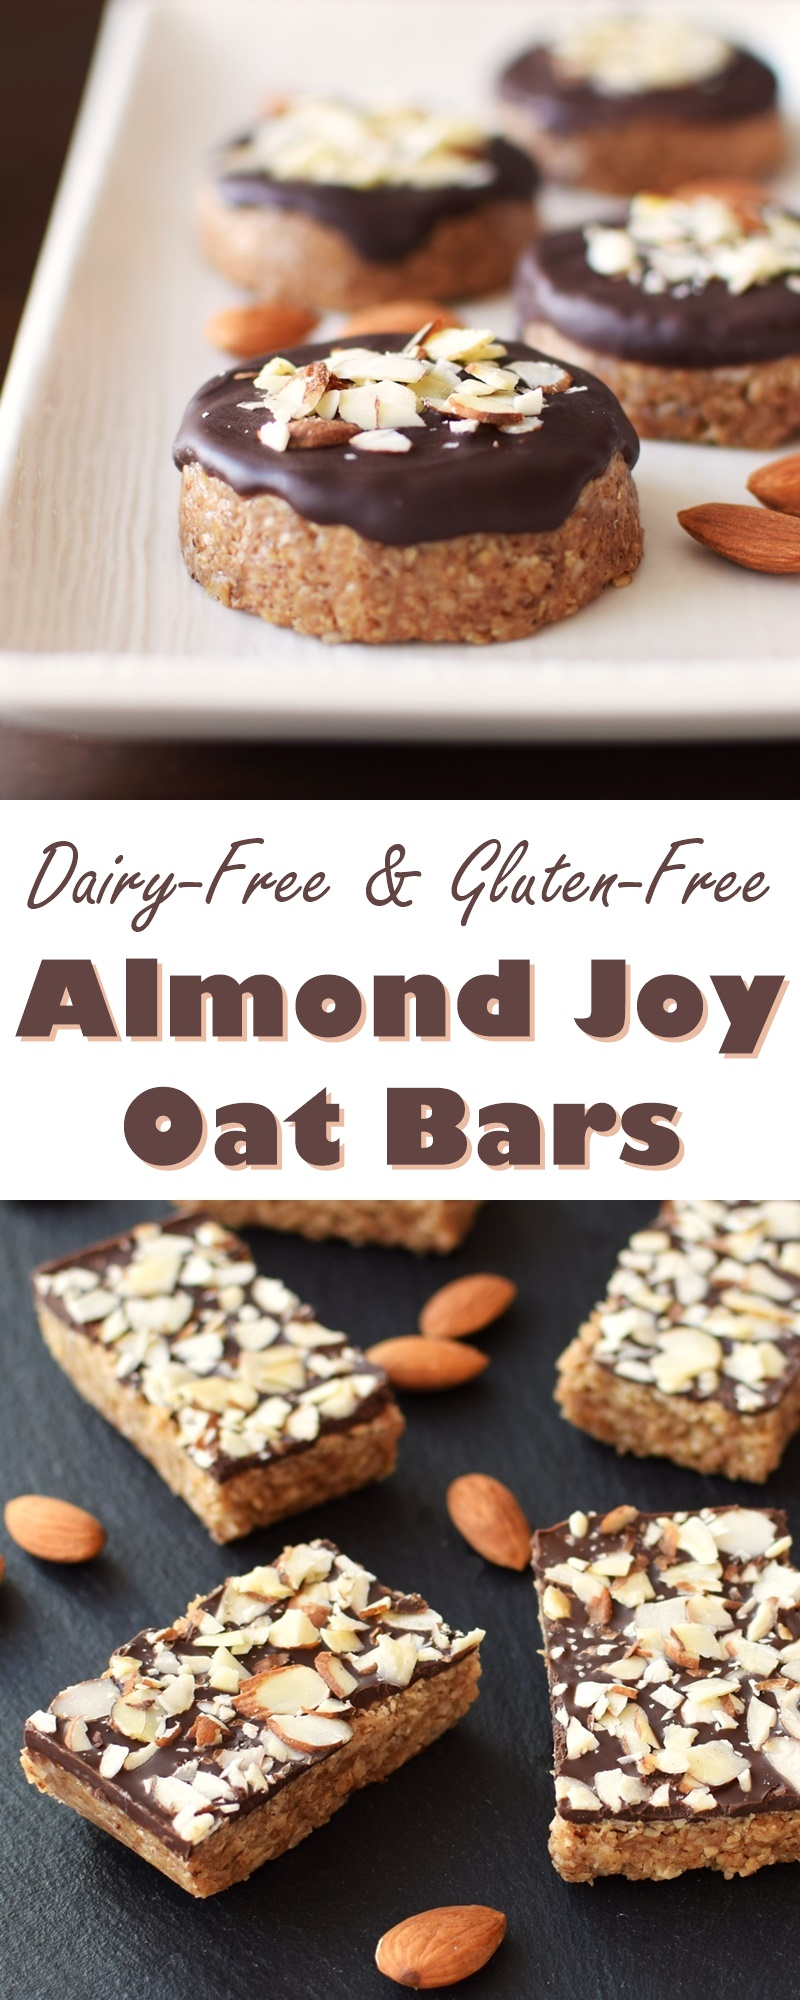 Almond Joy Oat Bars Recipe (Soft and Chewy) - no bake, dairy-free, gluten-free, vegan